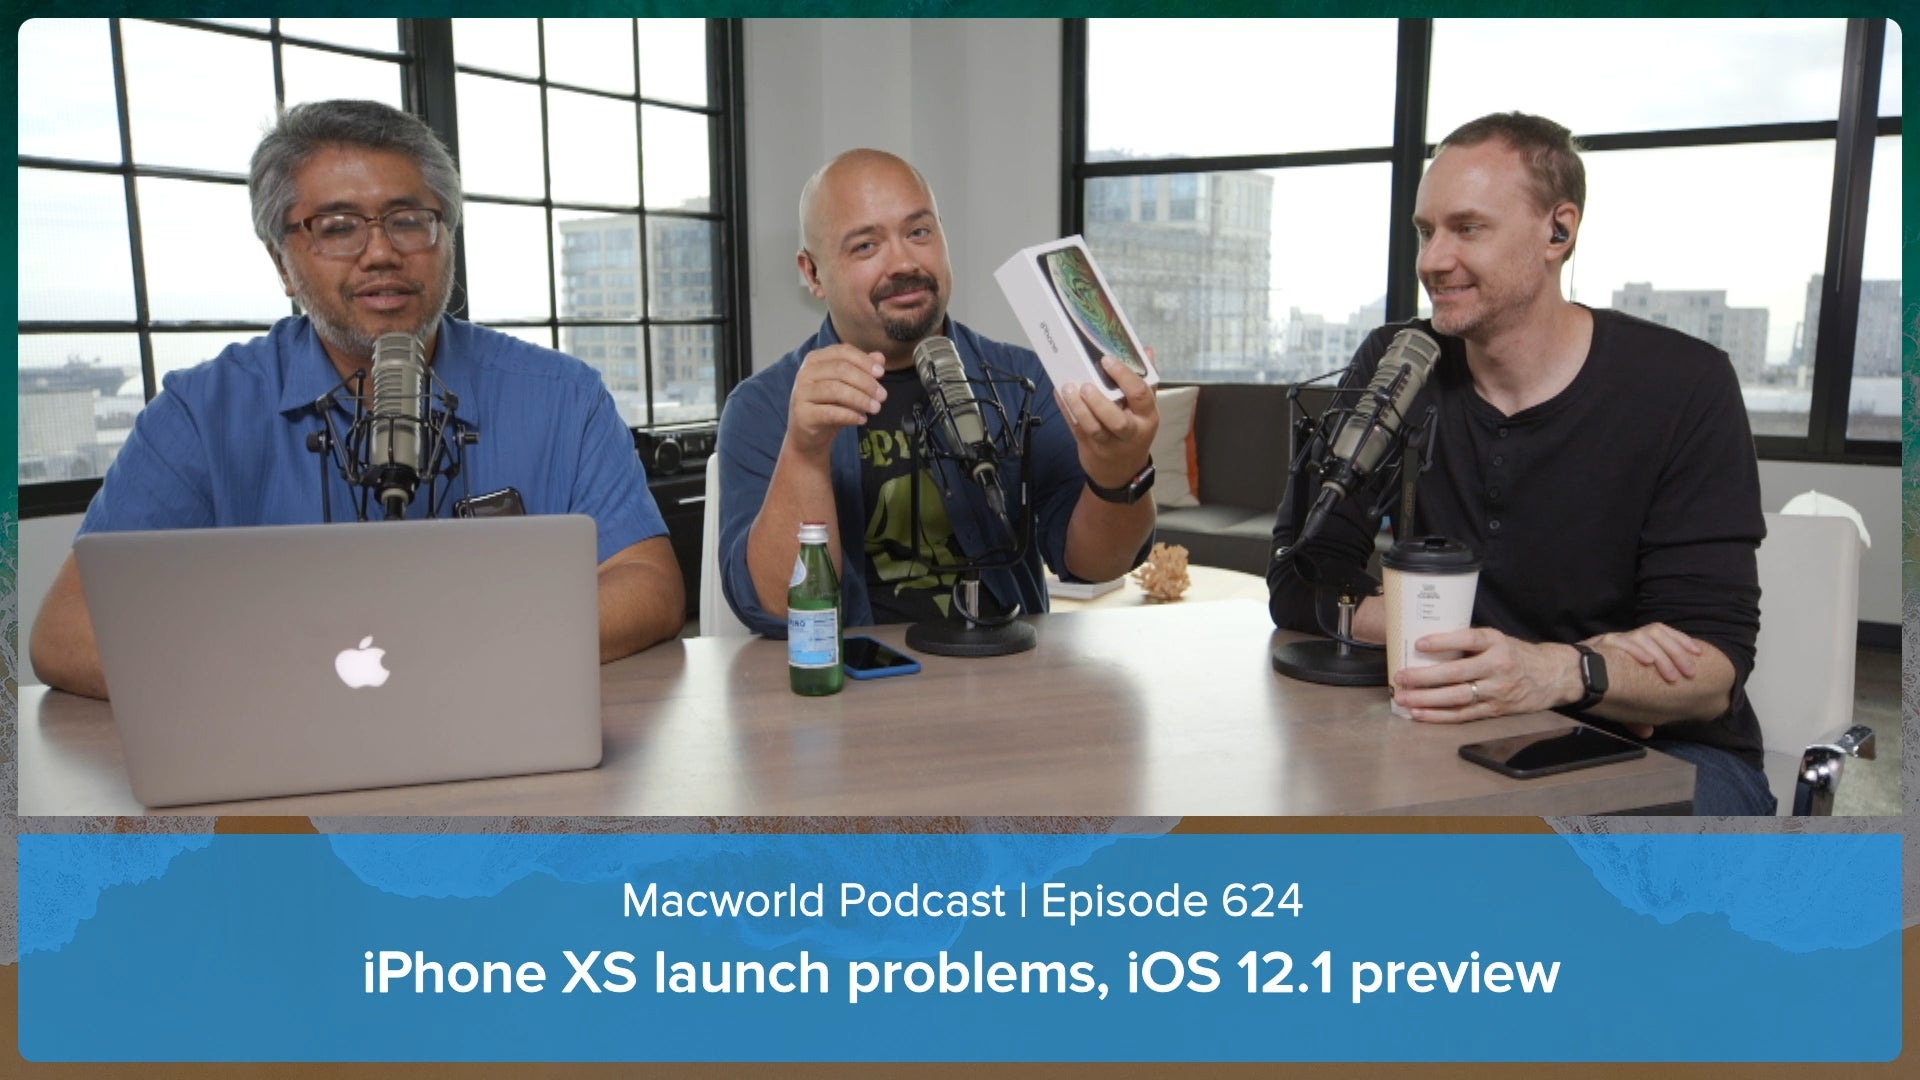 Macworld Podcast 624